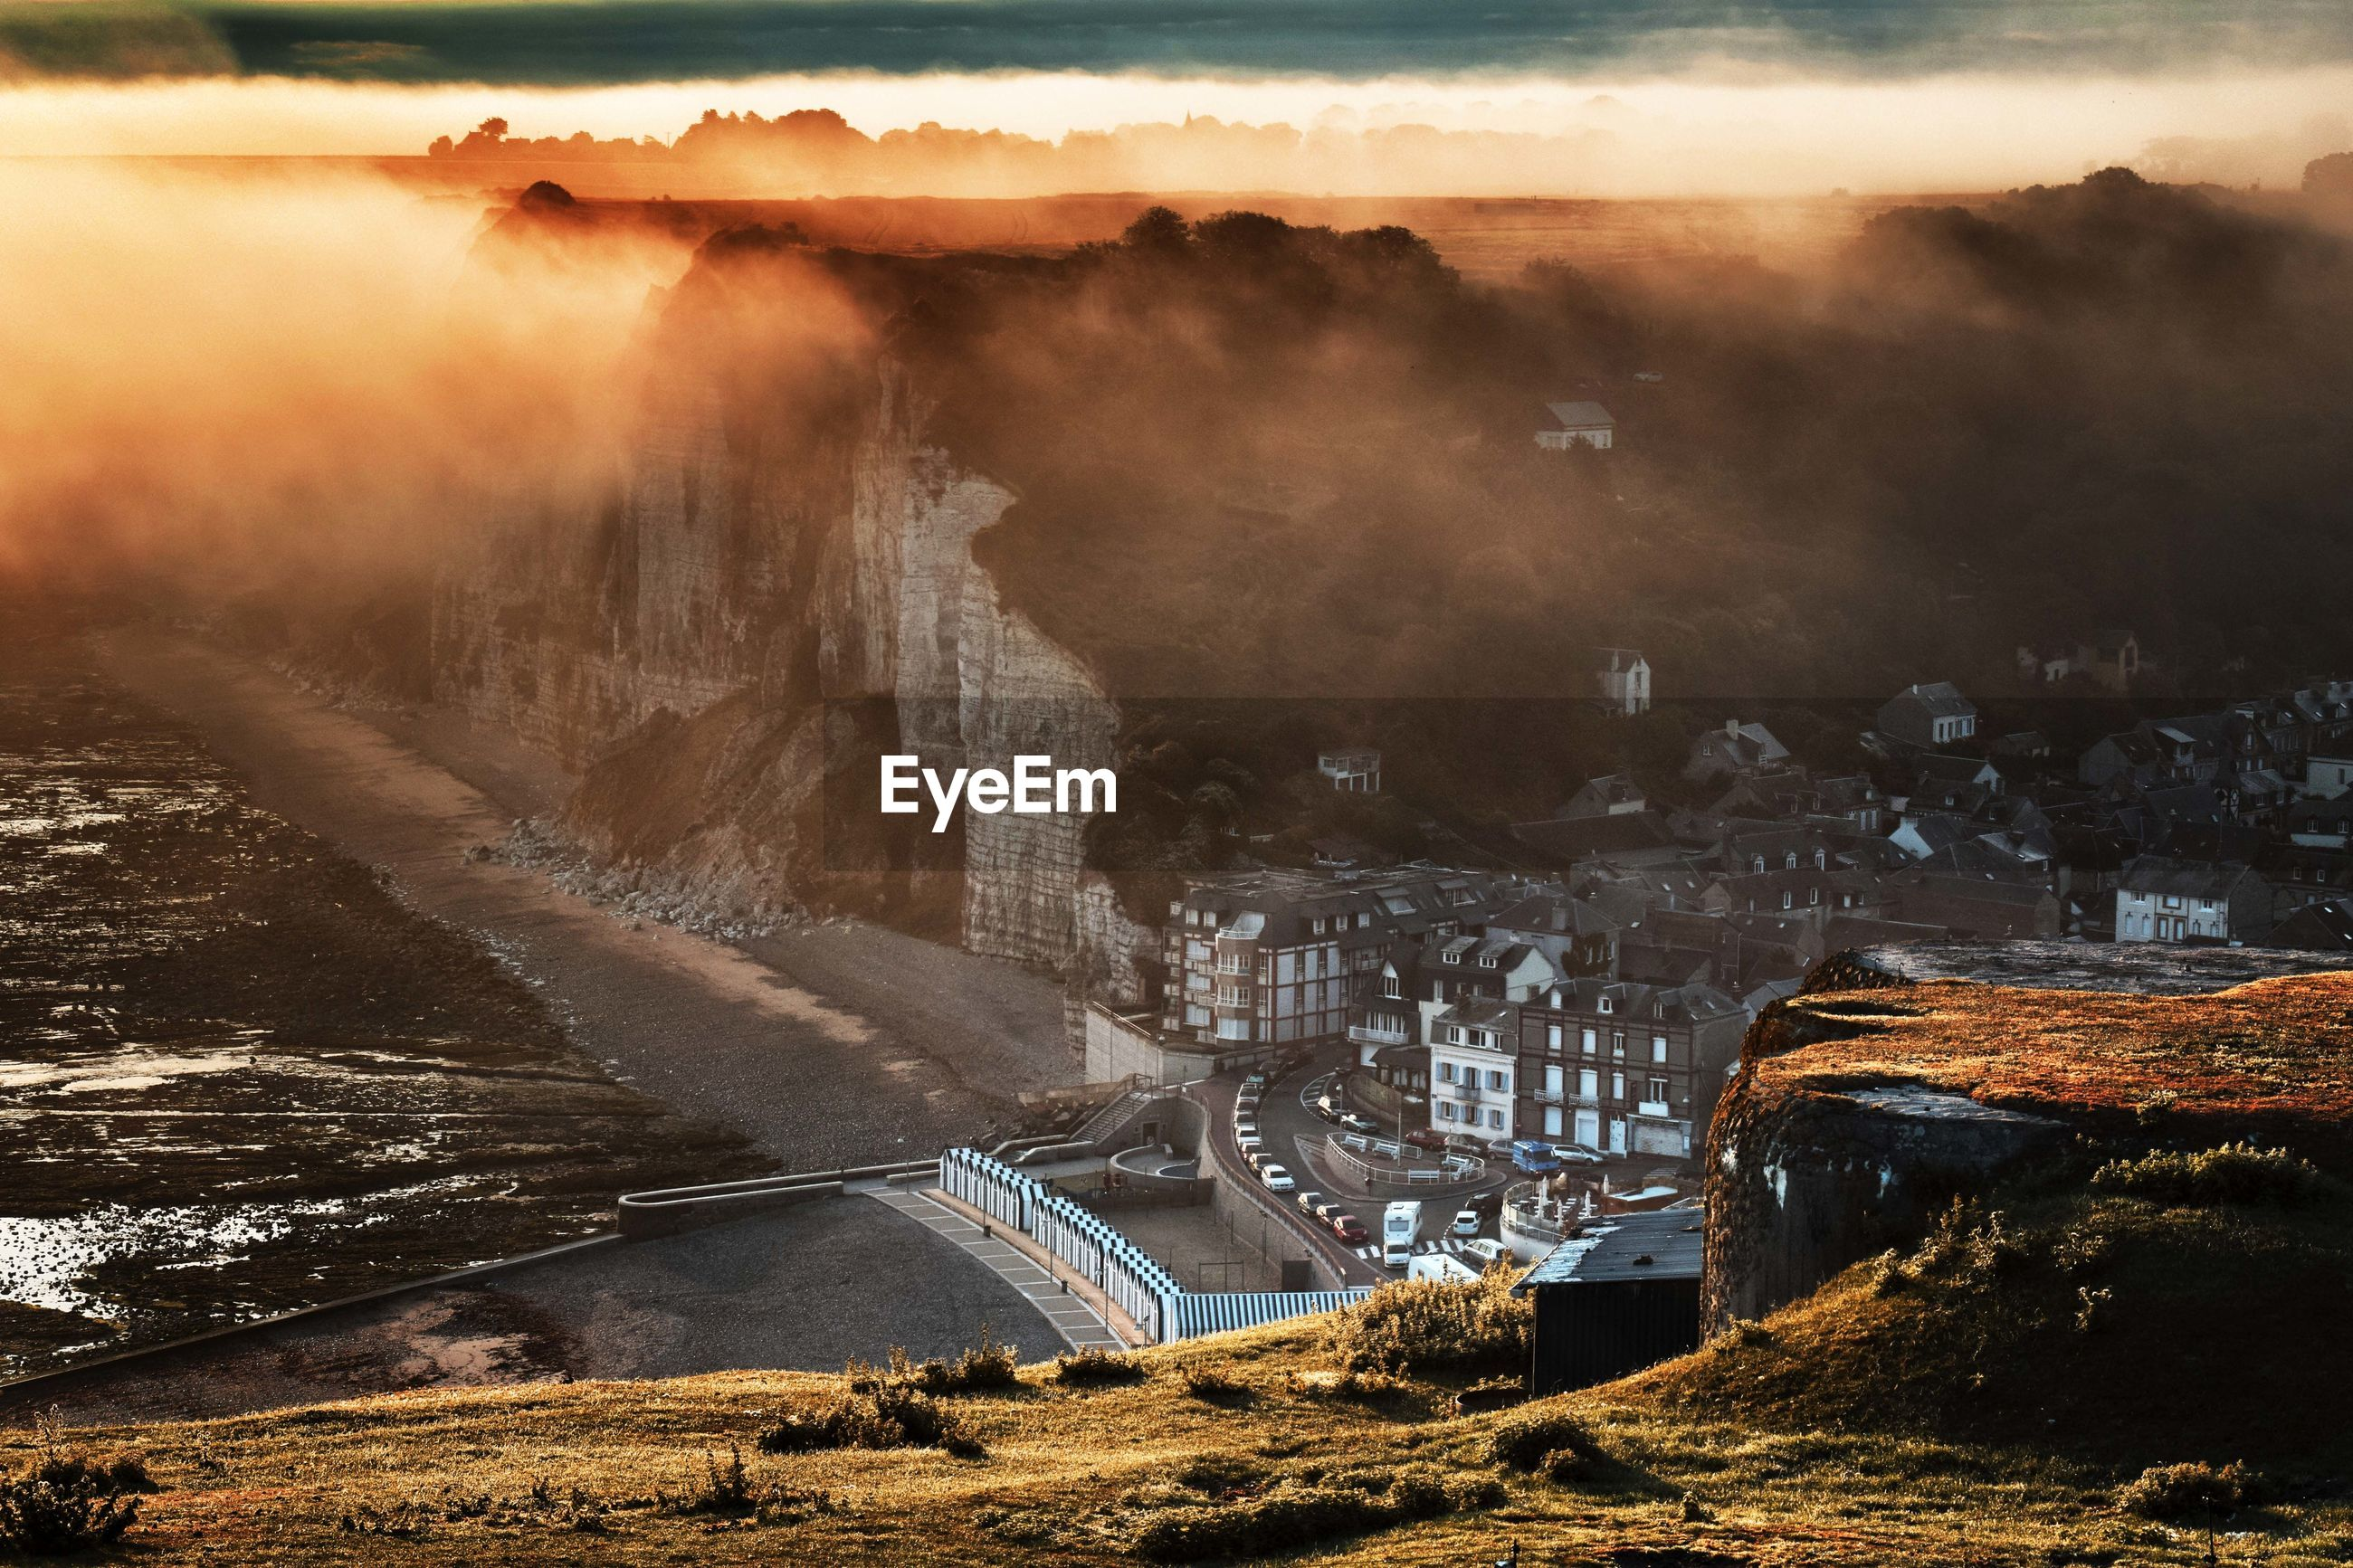 High angle view of buildings in town by mountain during foggy sunset